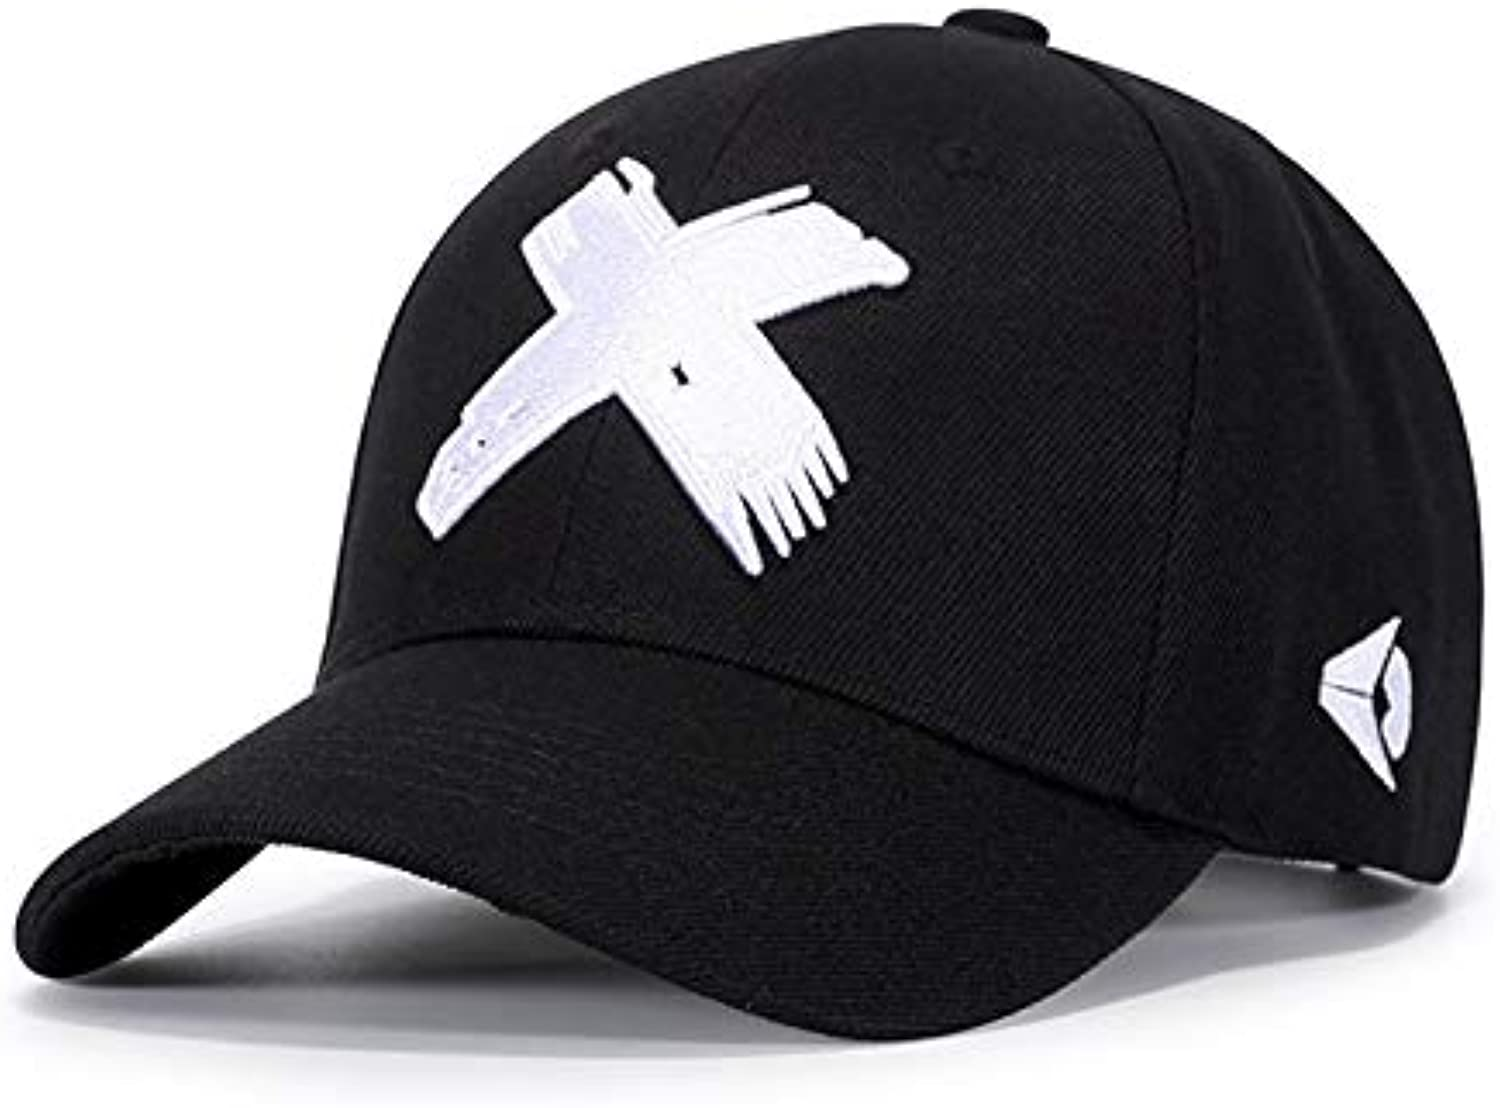 AAMOUISE Baseball Cap Baseball Cap Men dad hat Woman Casual Embroidery X caps Folded Adjustable Visor Cotton Flexfit Male Bone Black Bone hat